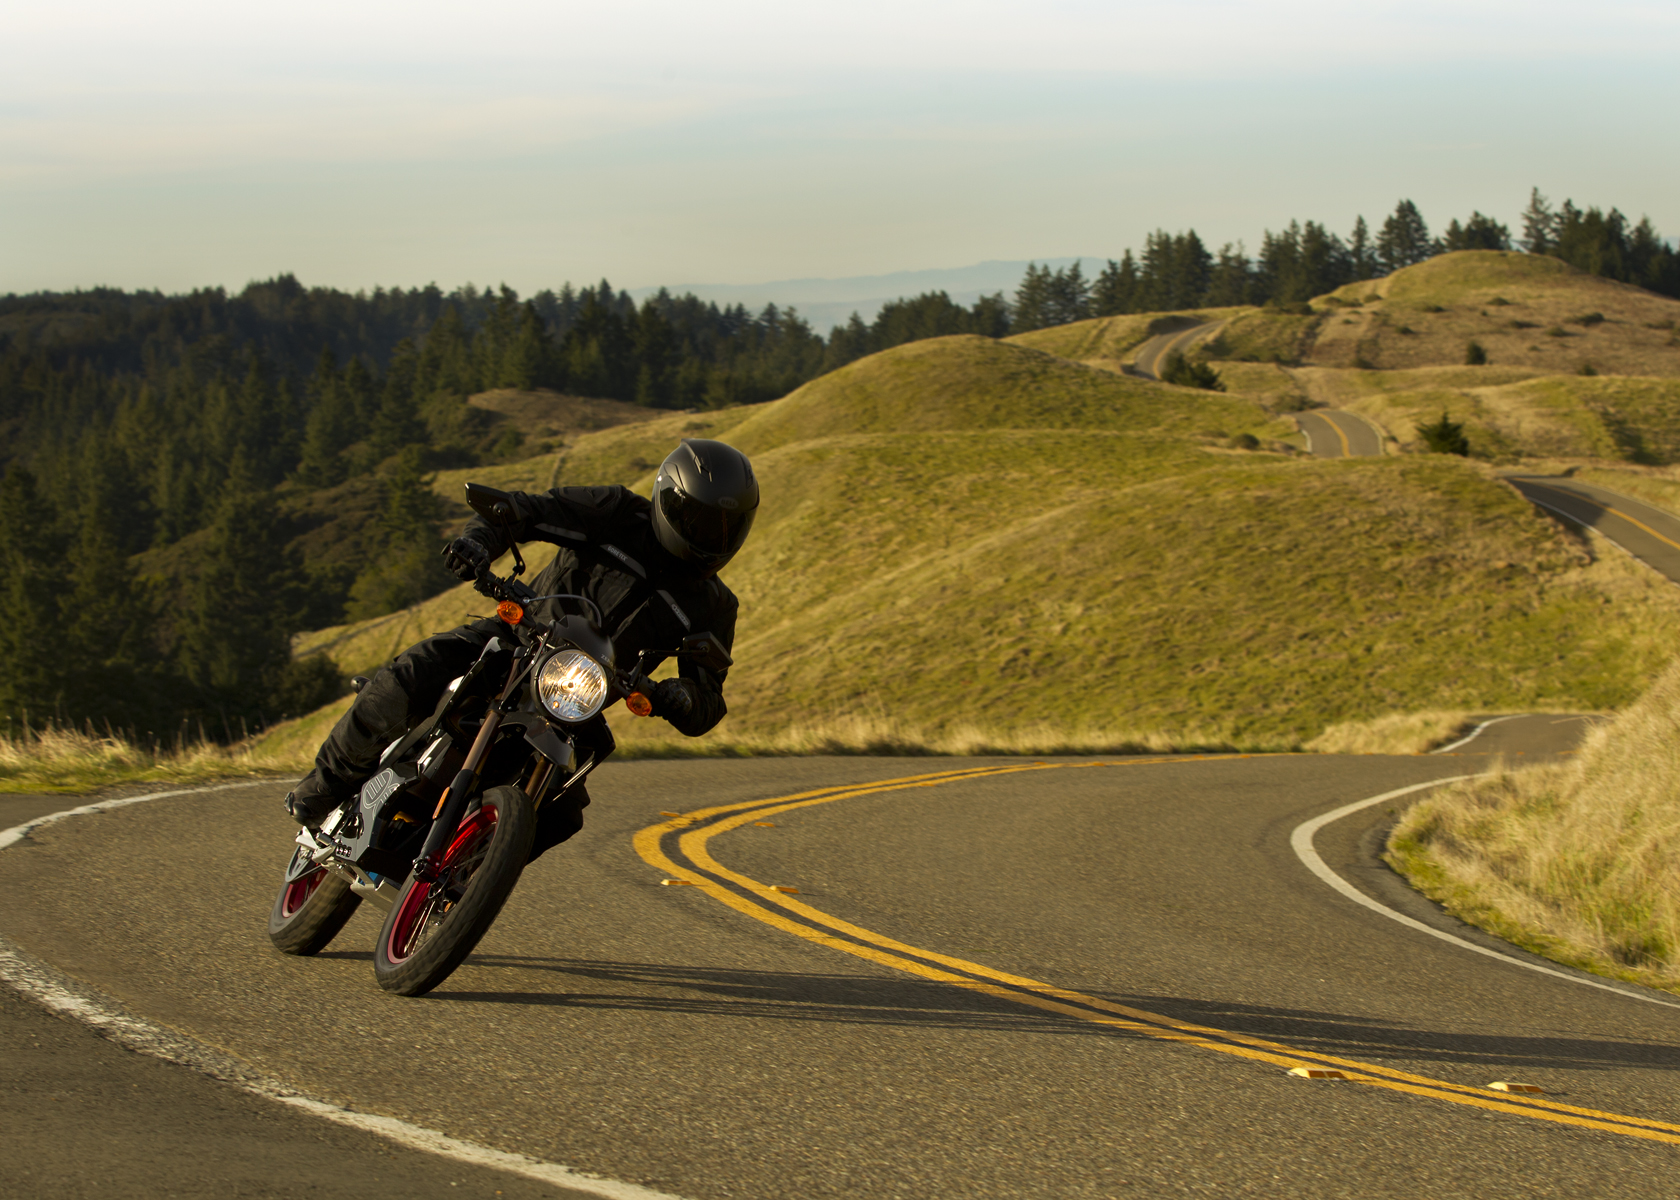 2011 Zero DS Electric Motorcycle: Yellow Hills, Lean Left